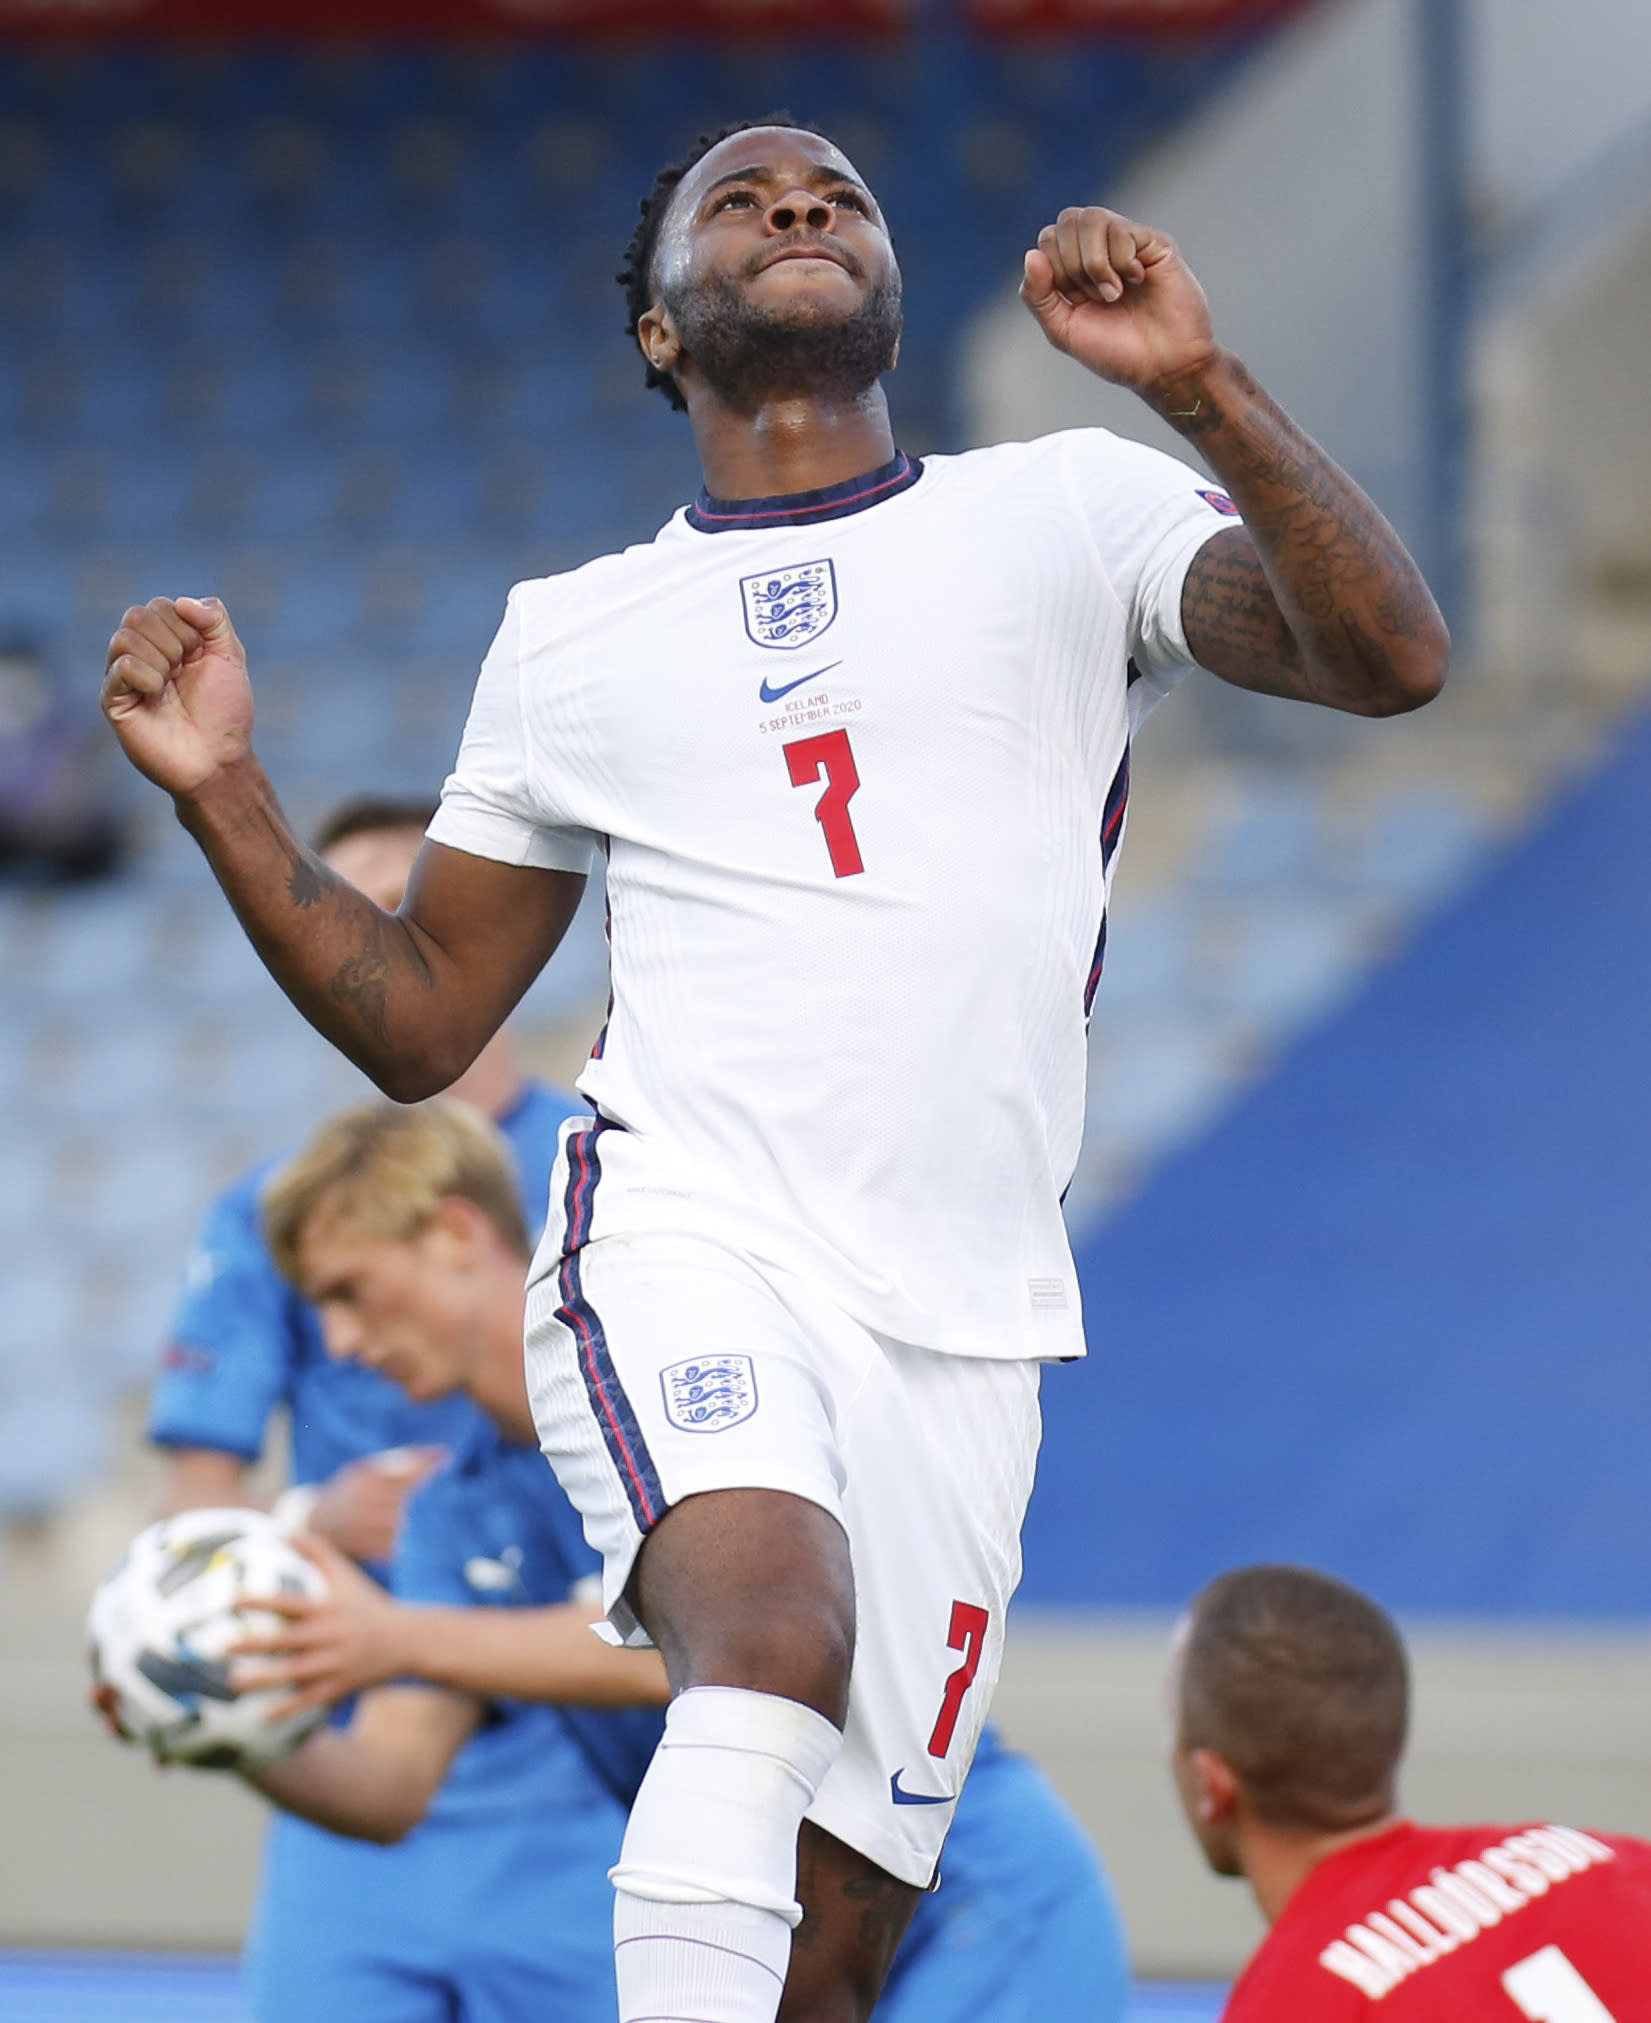 England's Raheem Sterling celebrates after scoring the opening goal from the penalty spot during the UEFA Nations League soccer match between Iceland and England in Reykjavik, Iceland, Saturday, Sept. 5, 2020. (AP Photo/Brynjar Gunnarson)